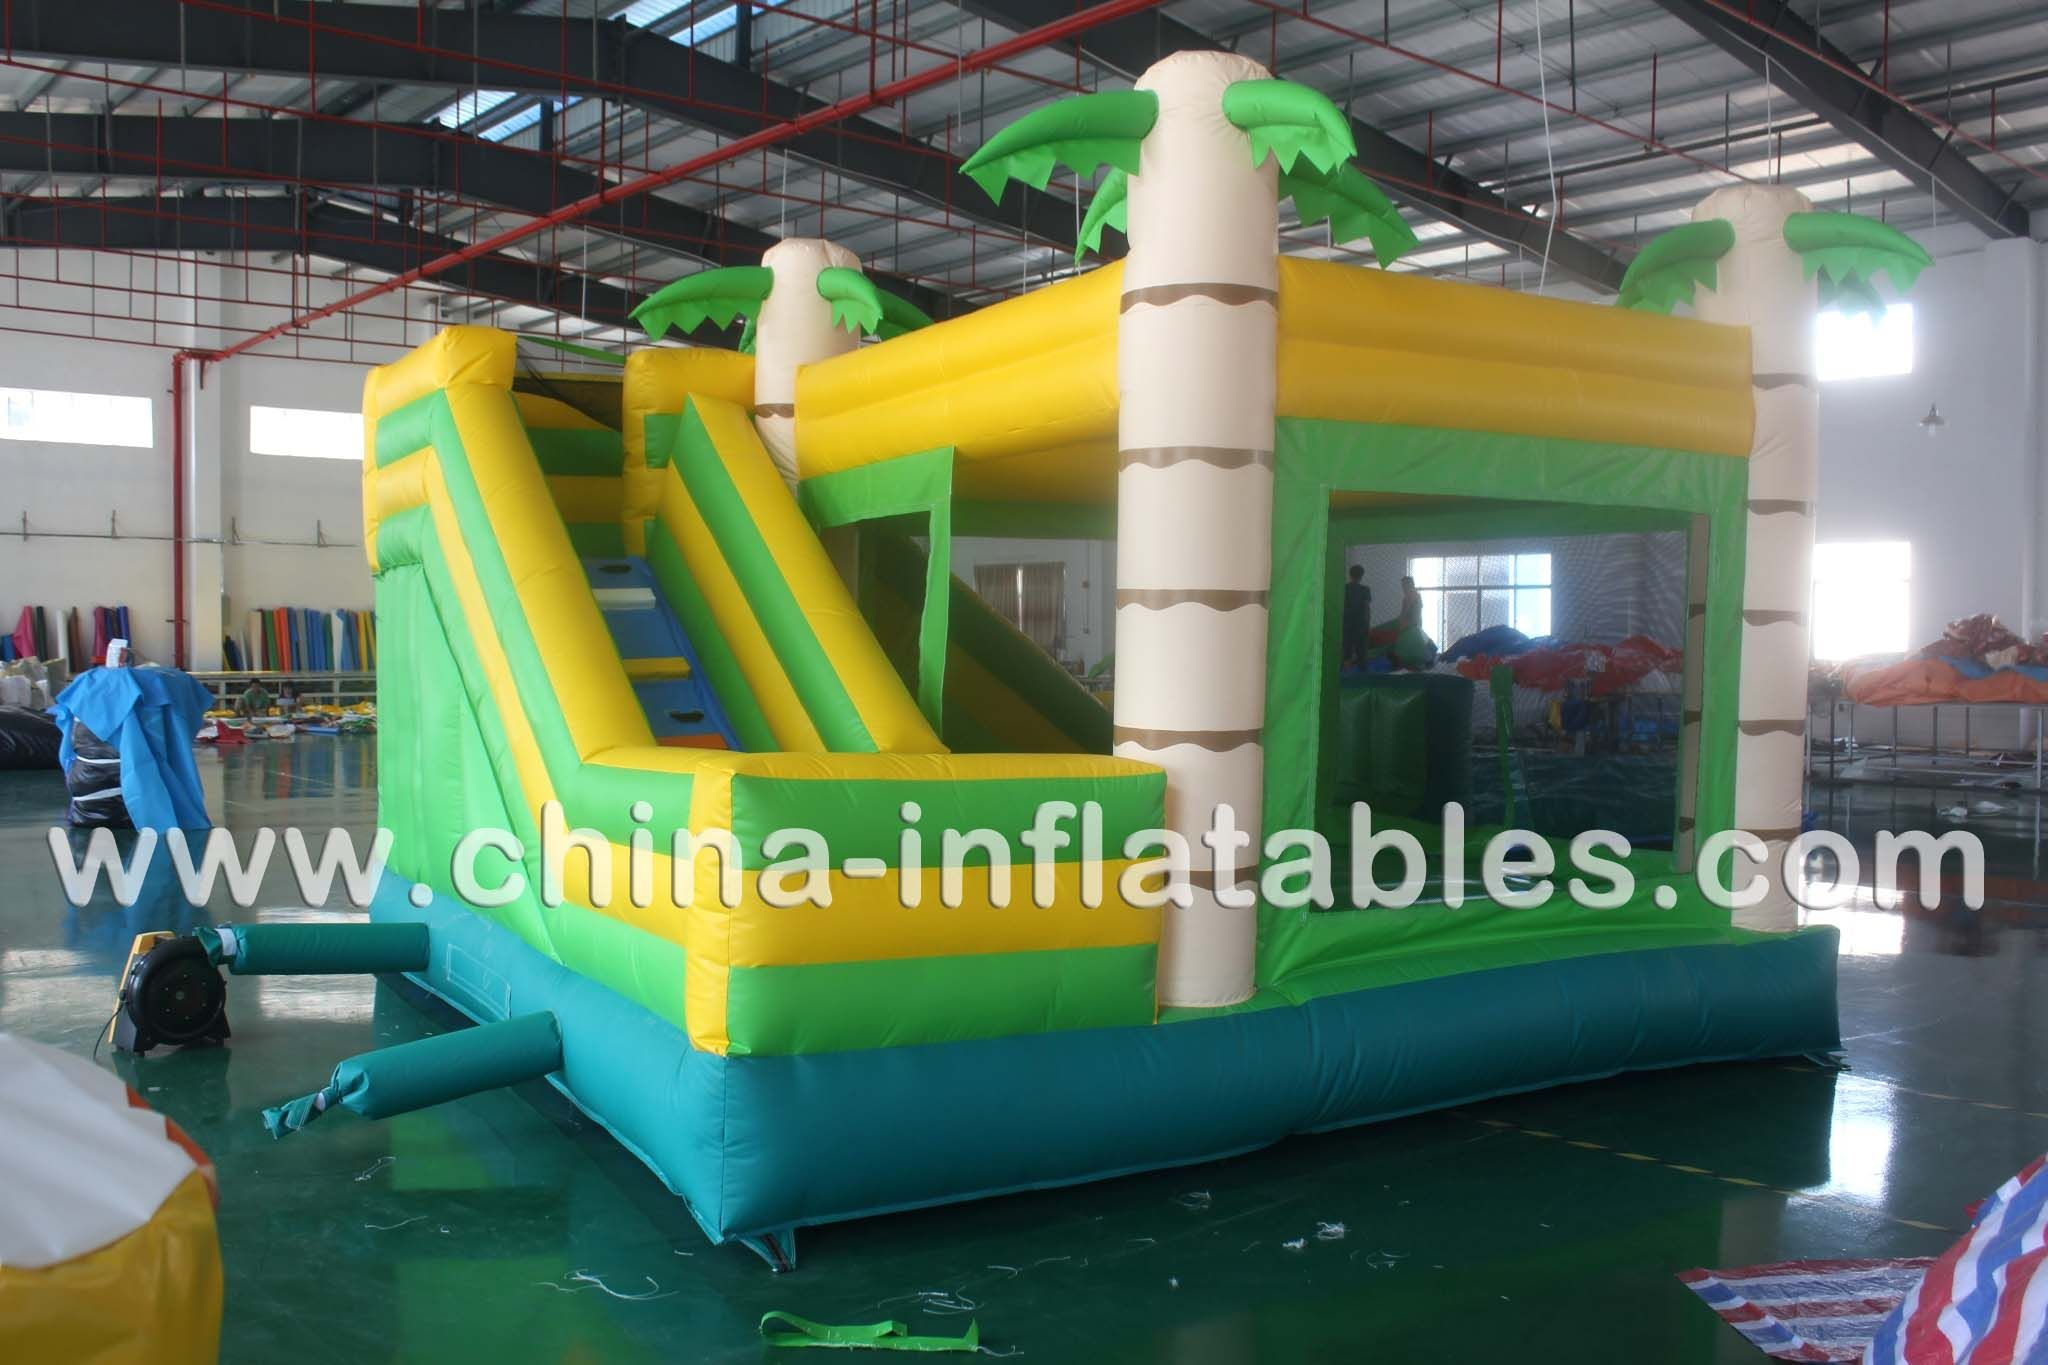 Inflatablebouncer Inflatable bos Inflatable bos for kids for